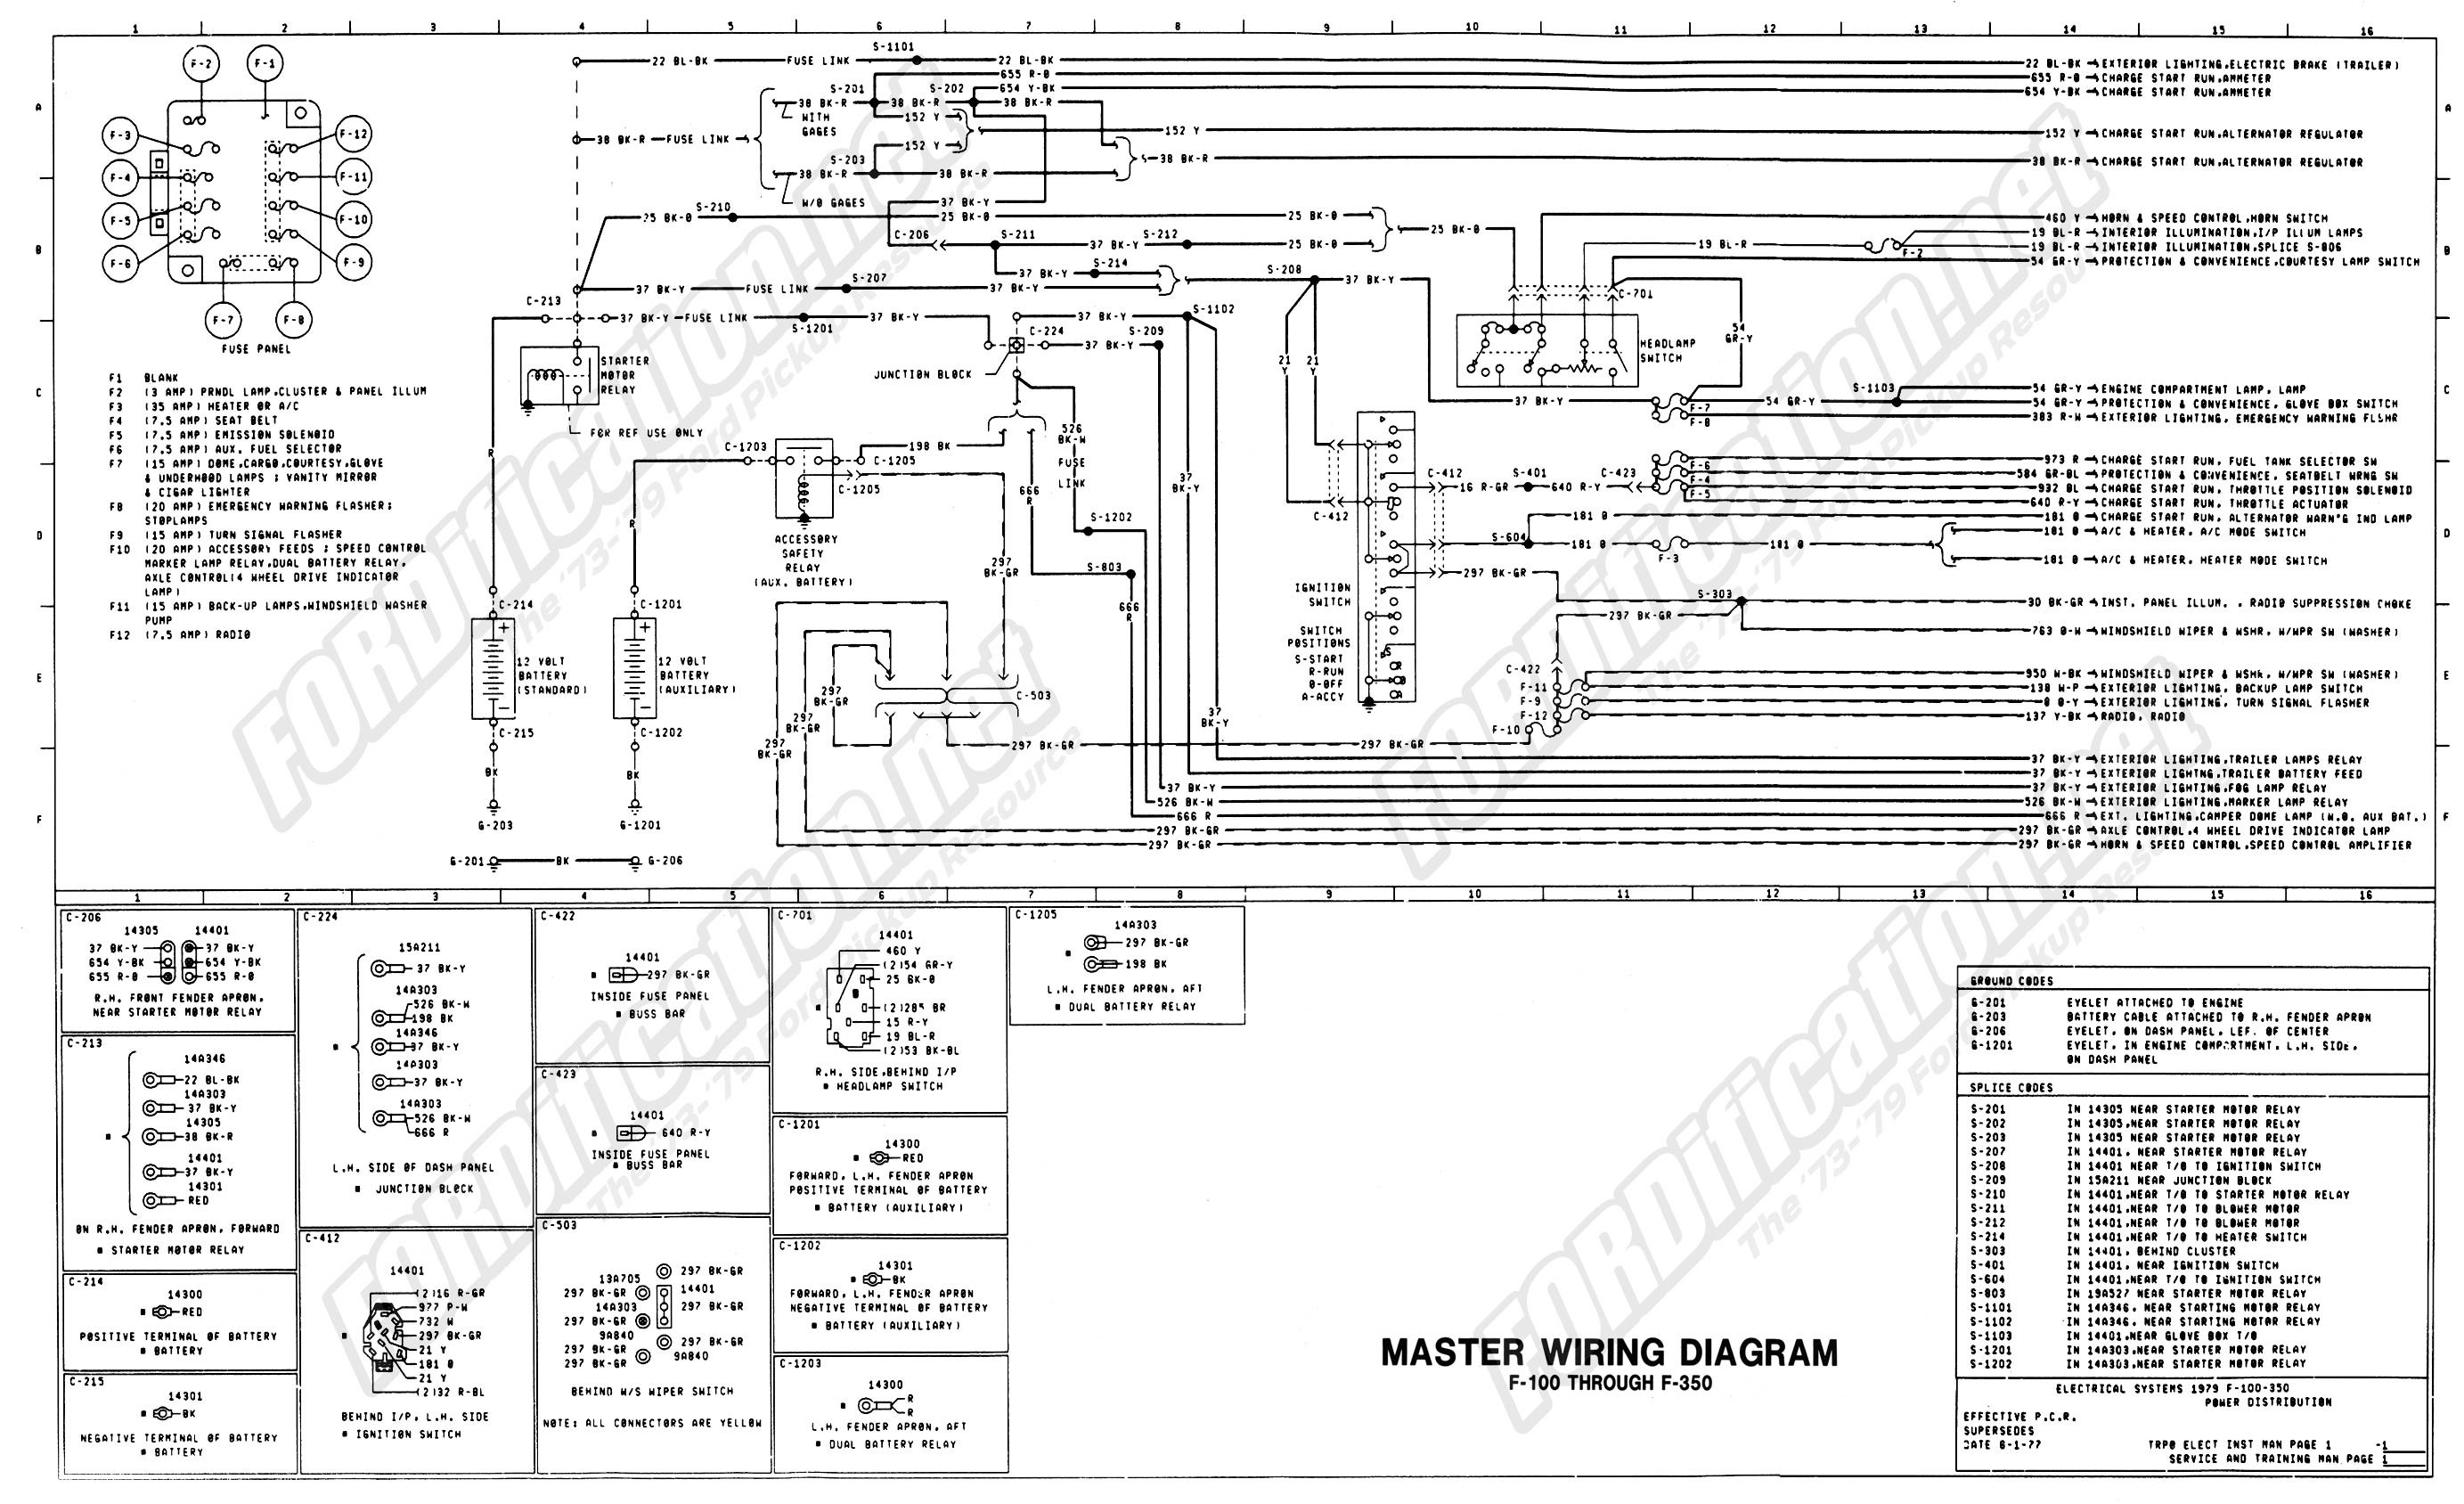 wiring 79master 1of9 1973 1979 Ford Truck Wiring Diagrams & Schematics  FORDification from 2002 ford f150 ...